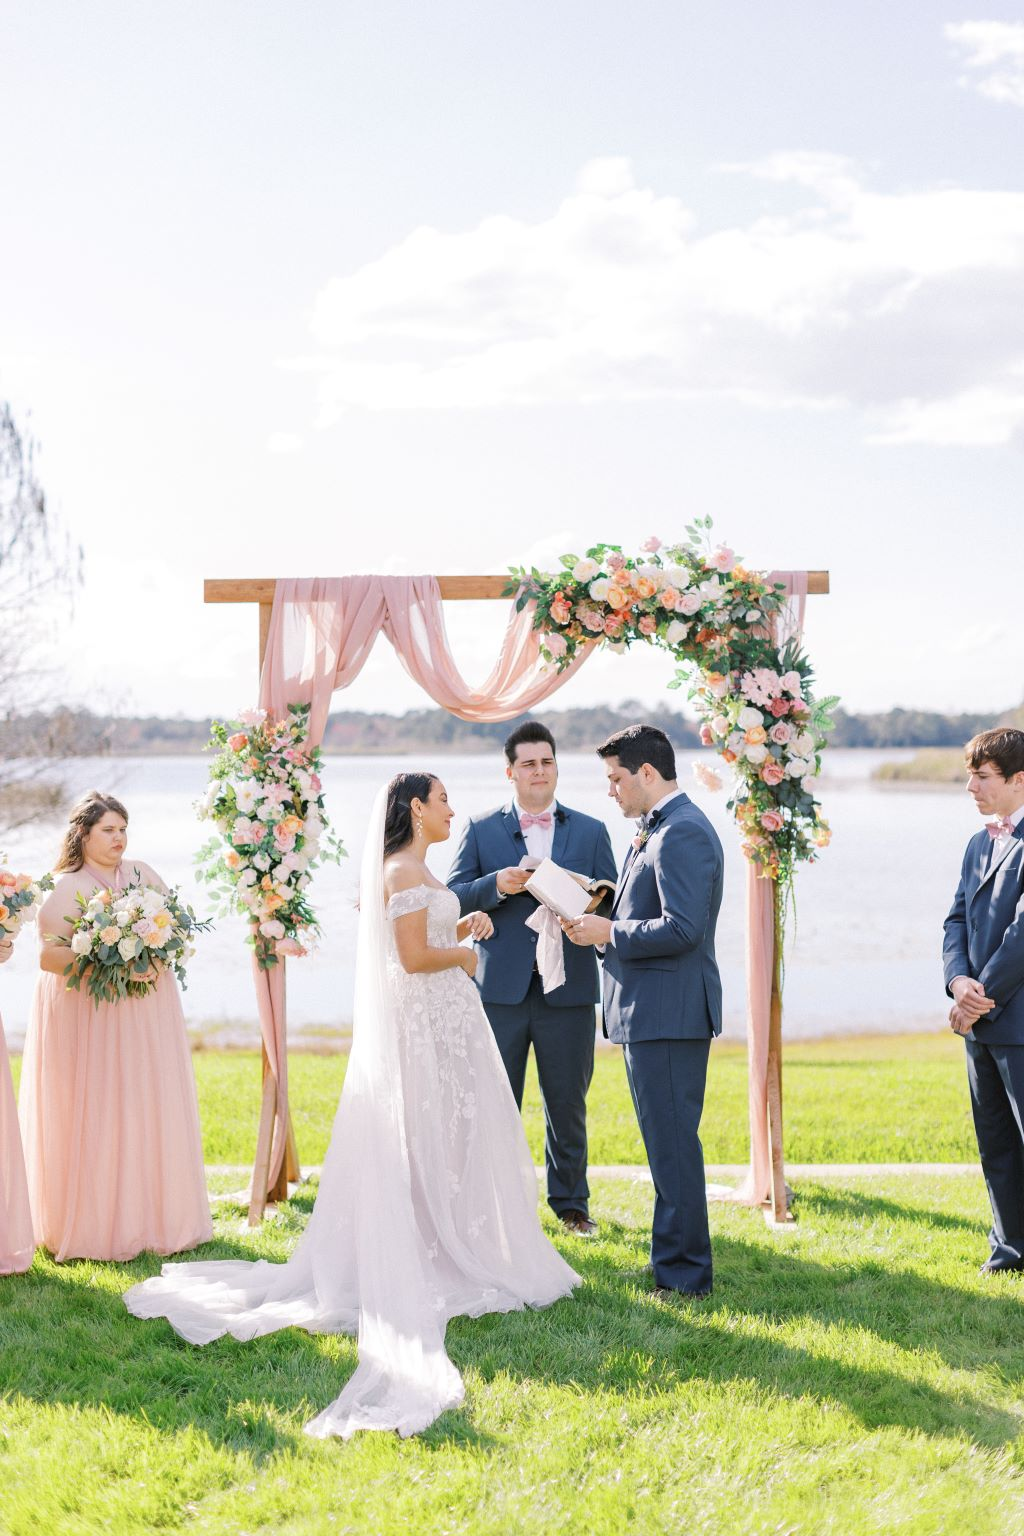 bride and groom being married by groom's brother at their bright and airy springtime wedding